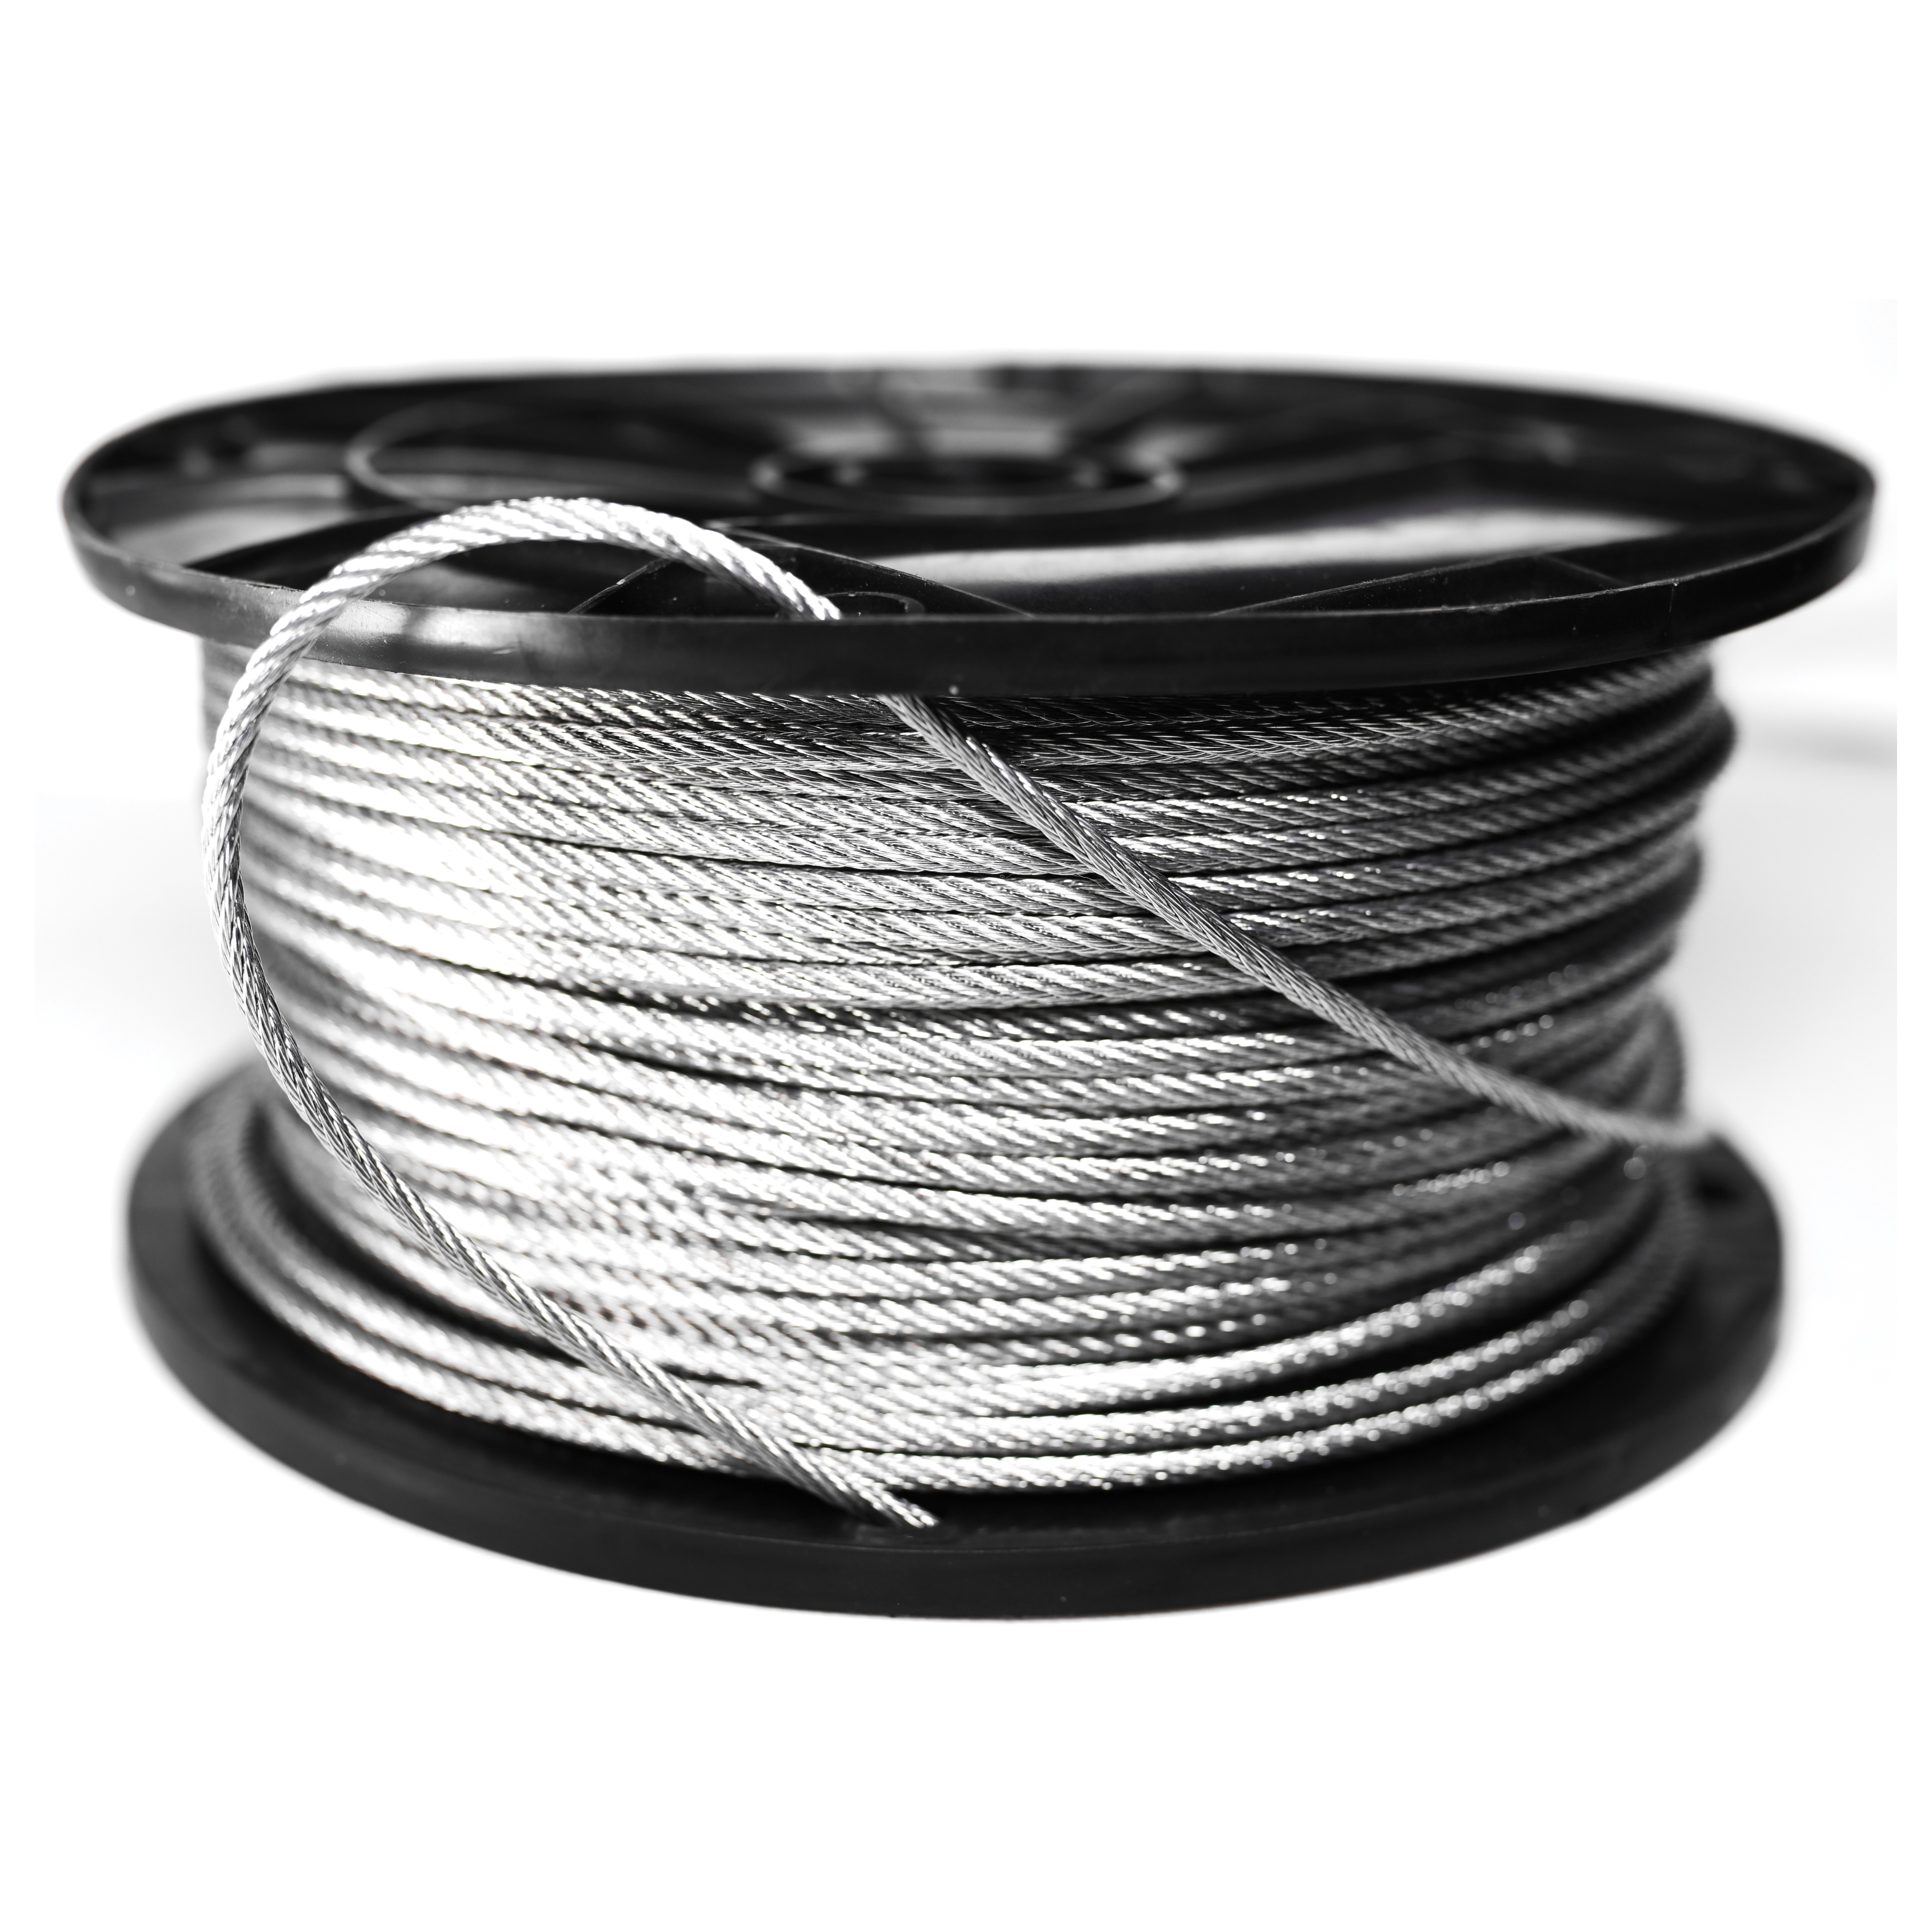 Picture of BARON 695910 Aircraft Cable, 1/8 in Dia, 500 ft L, 400 lb Working Load, Galvanized